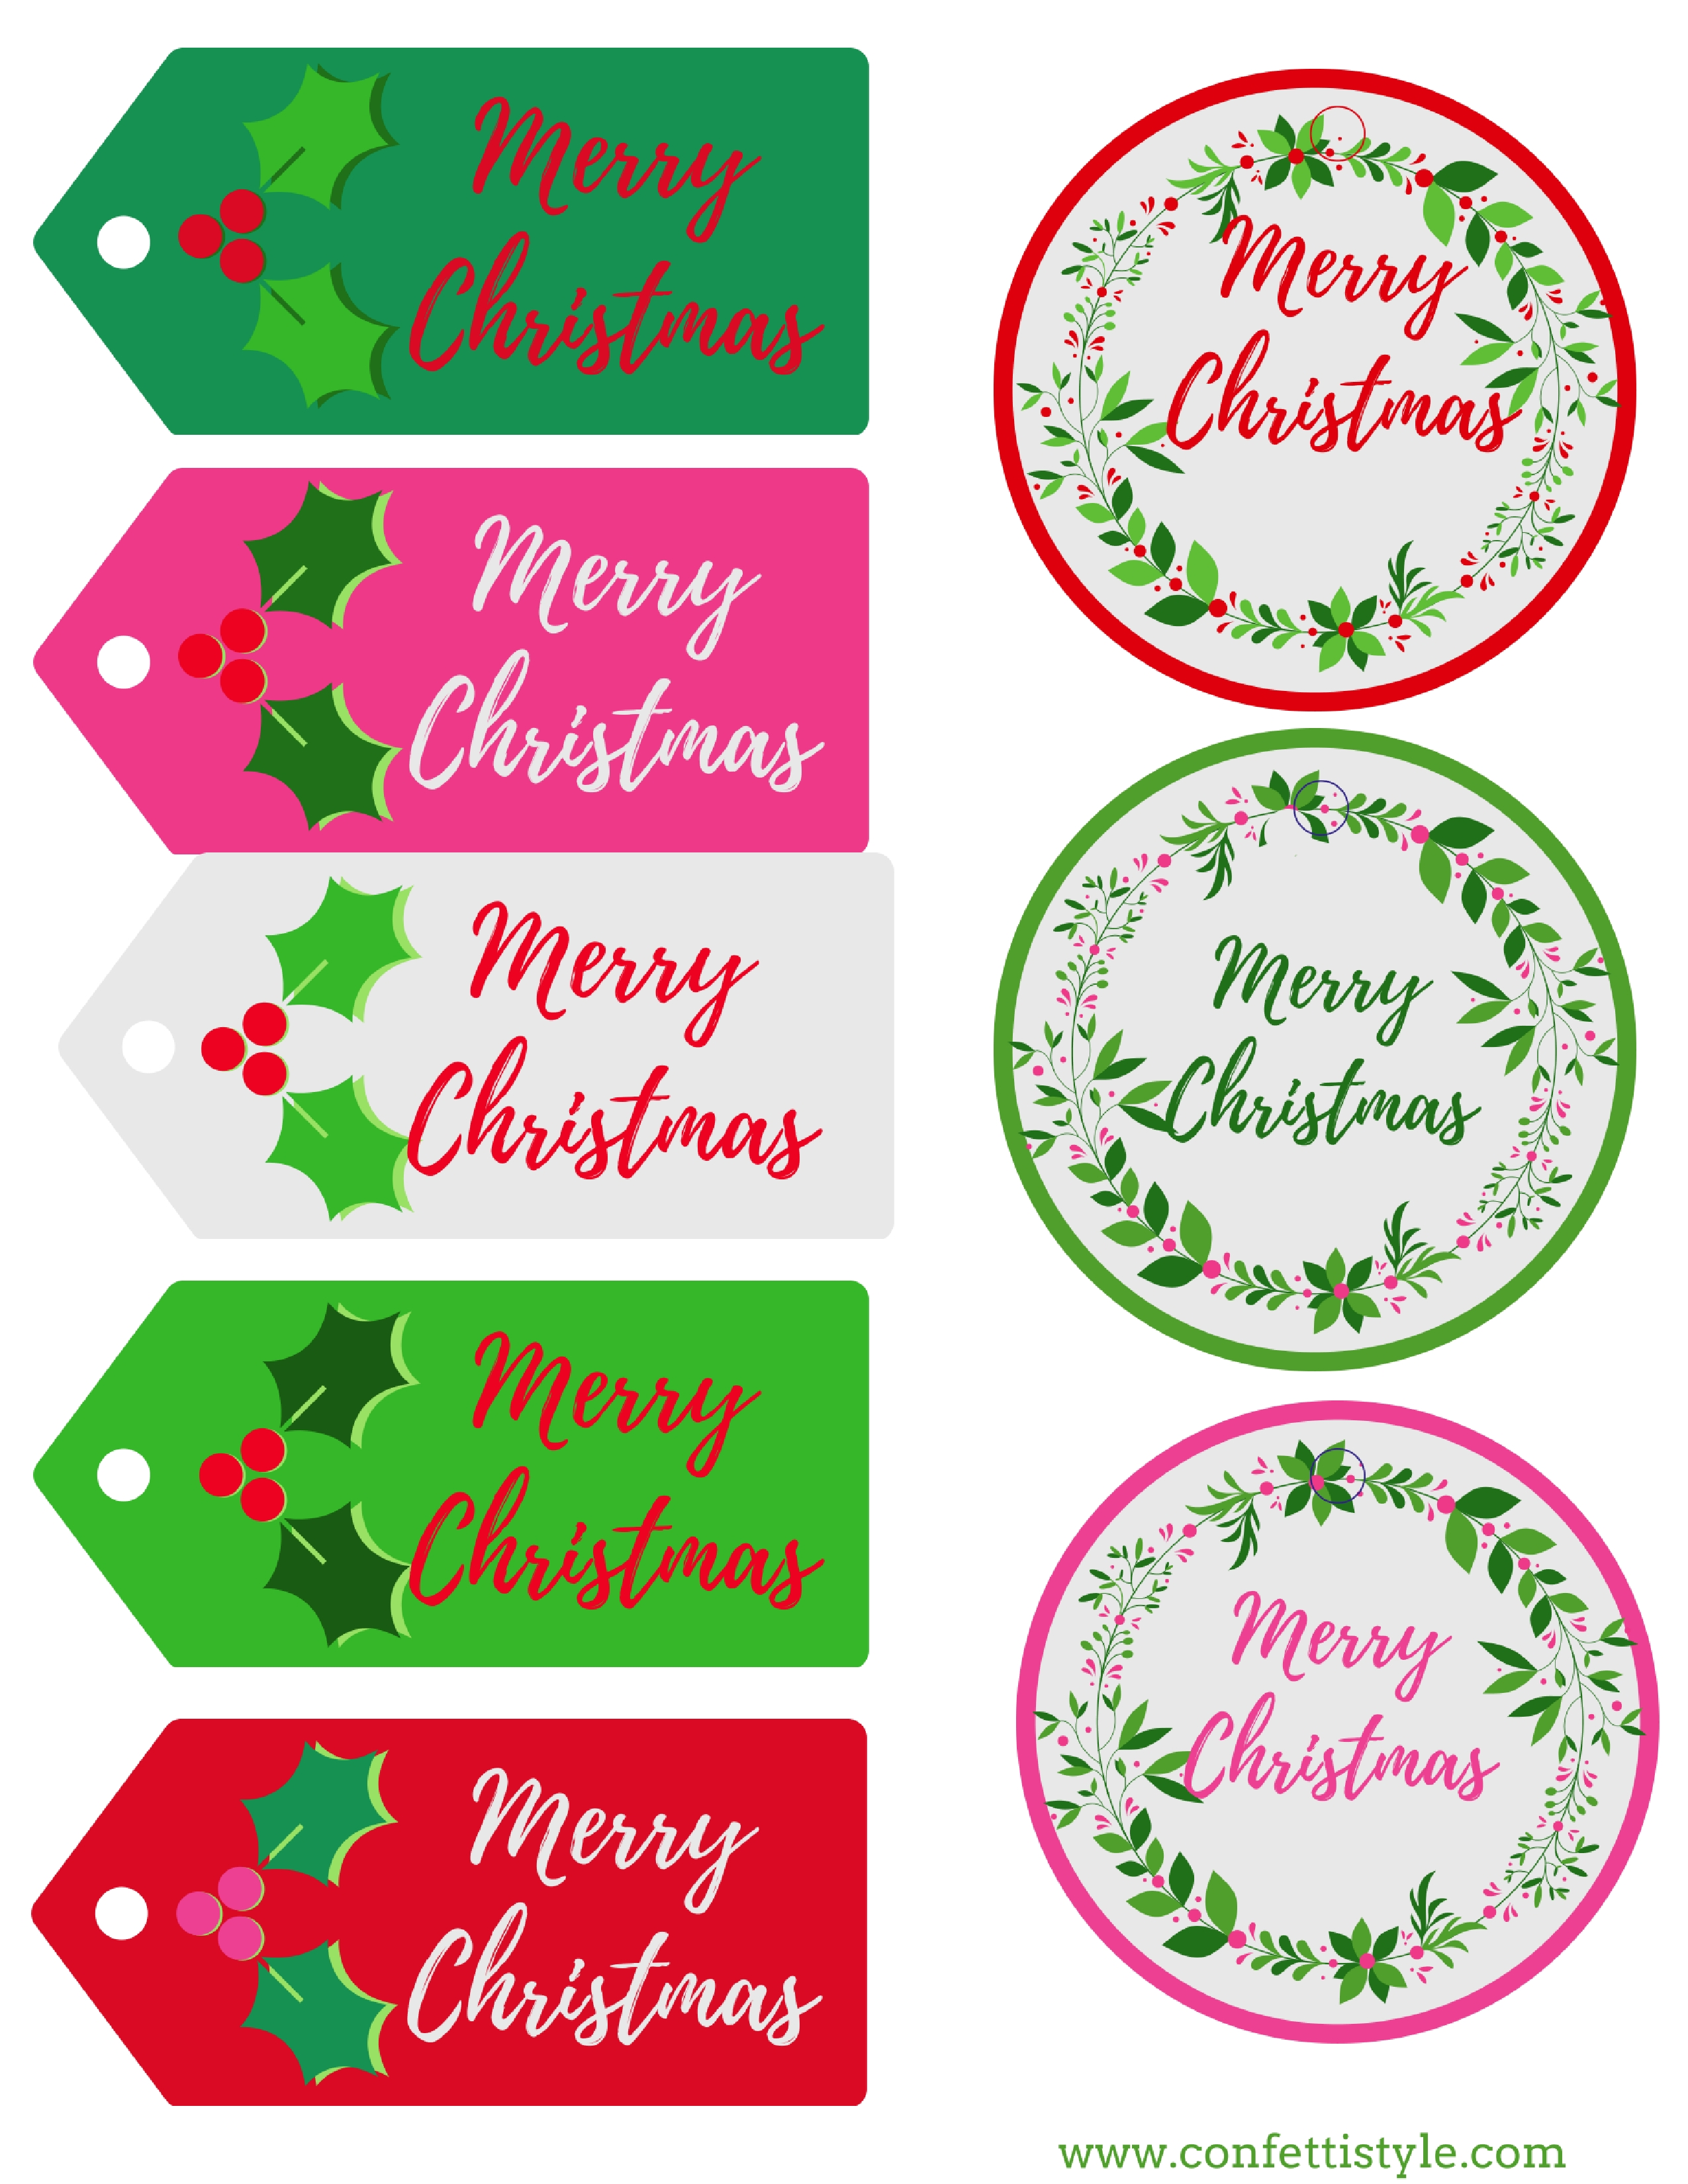 It's just a picture of Enterprising Merry Christmas Tags Printable